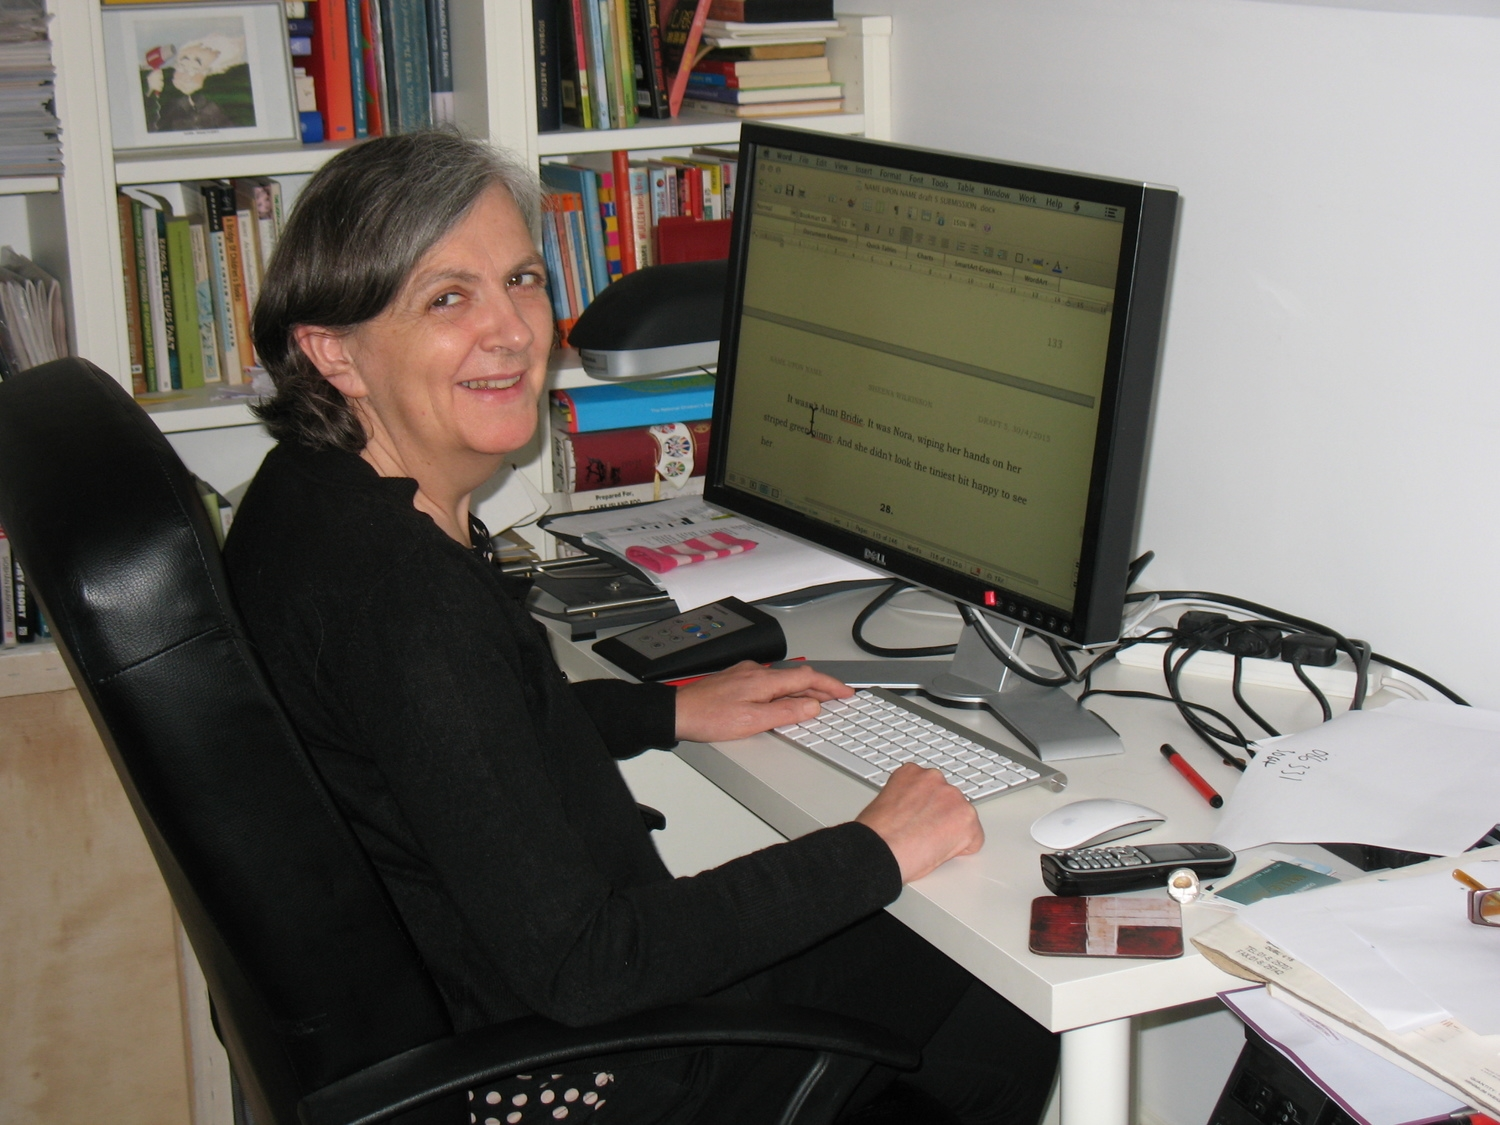 Siobhán at her computer.JPG